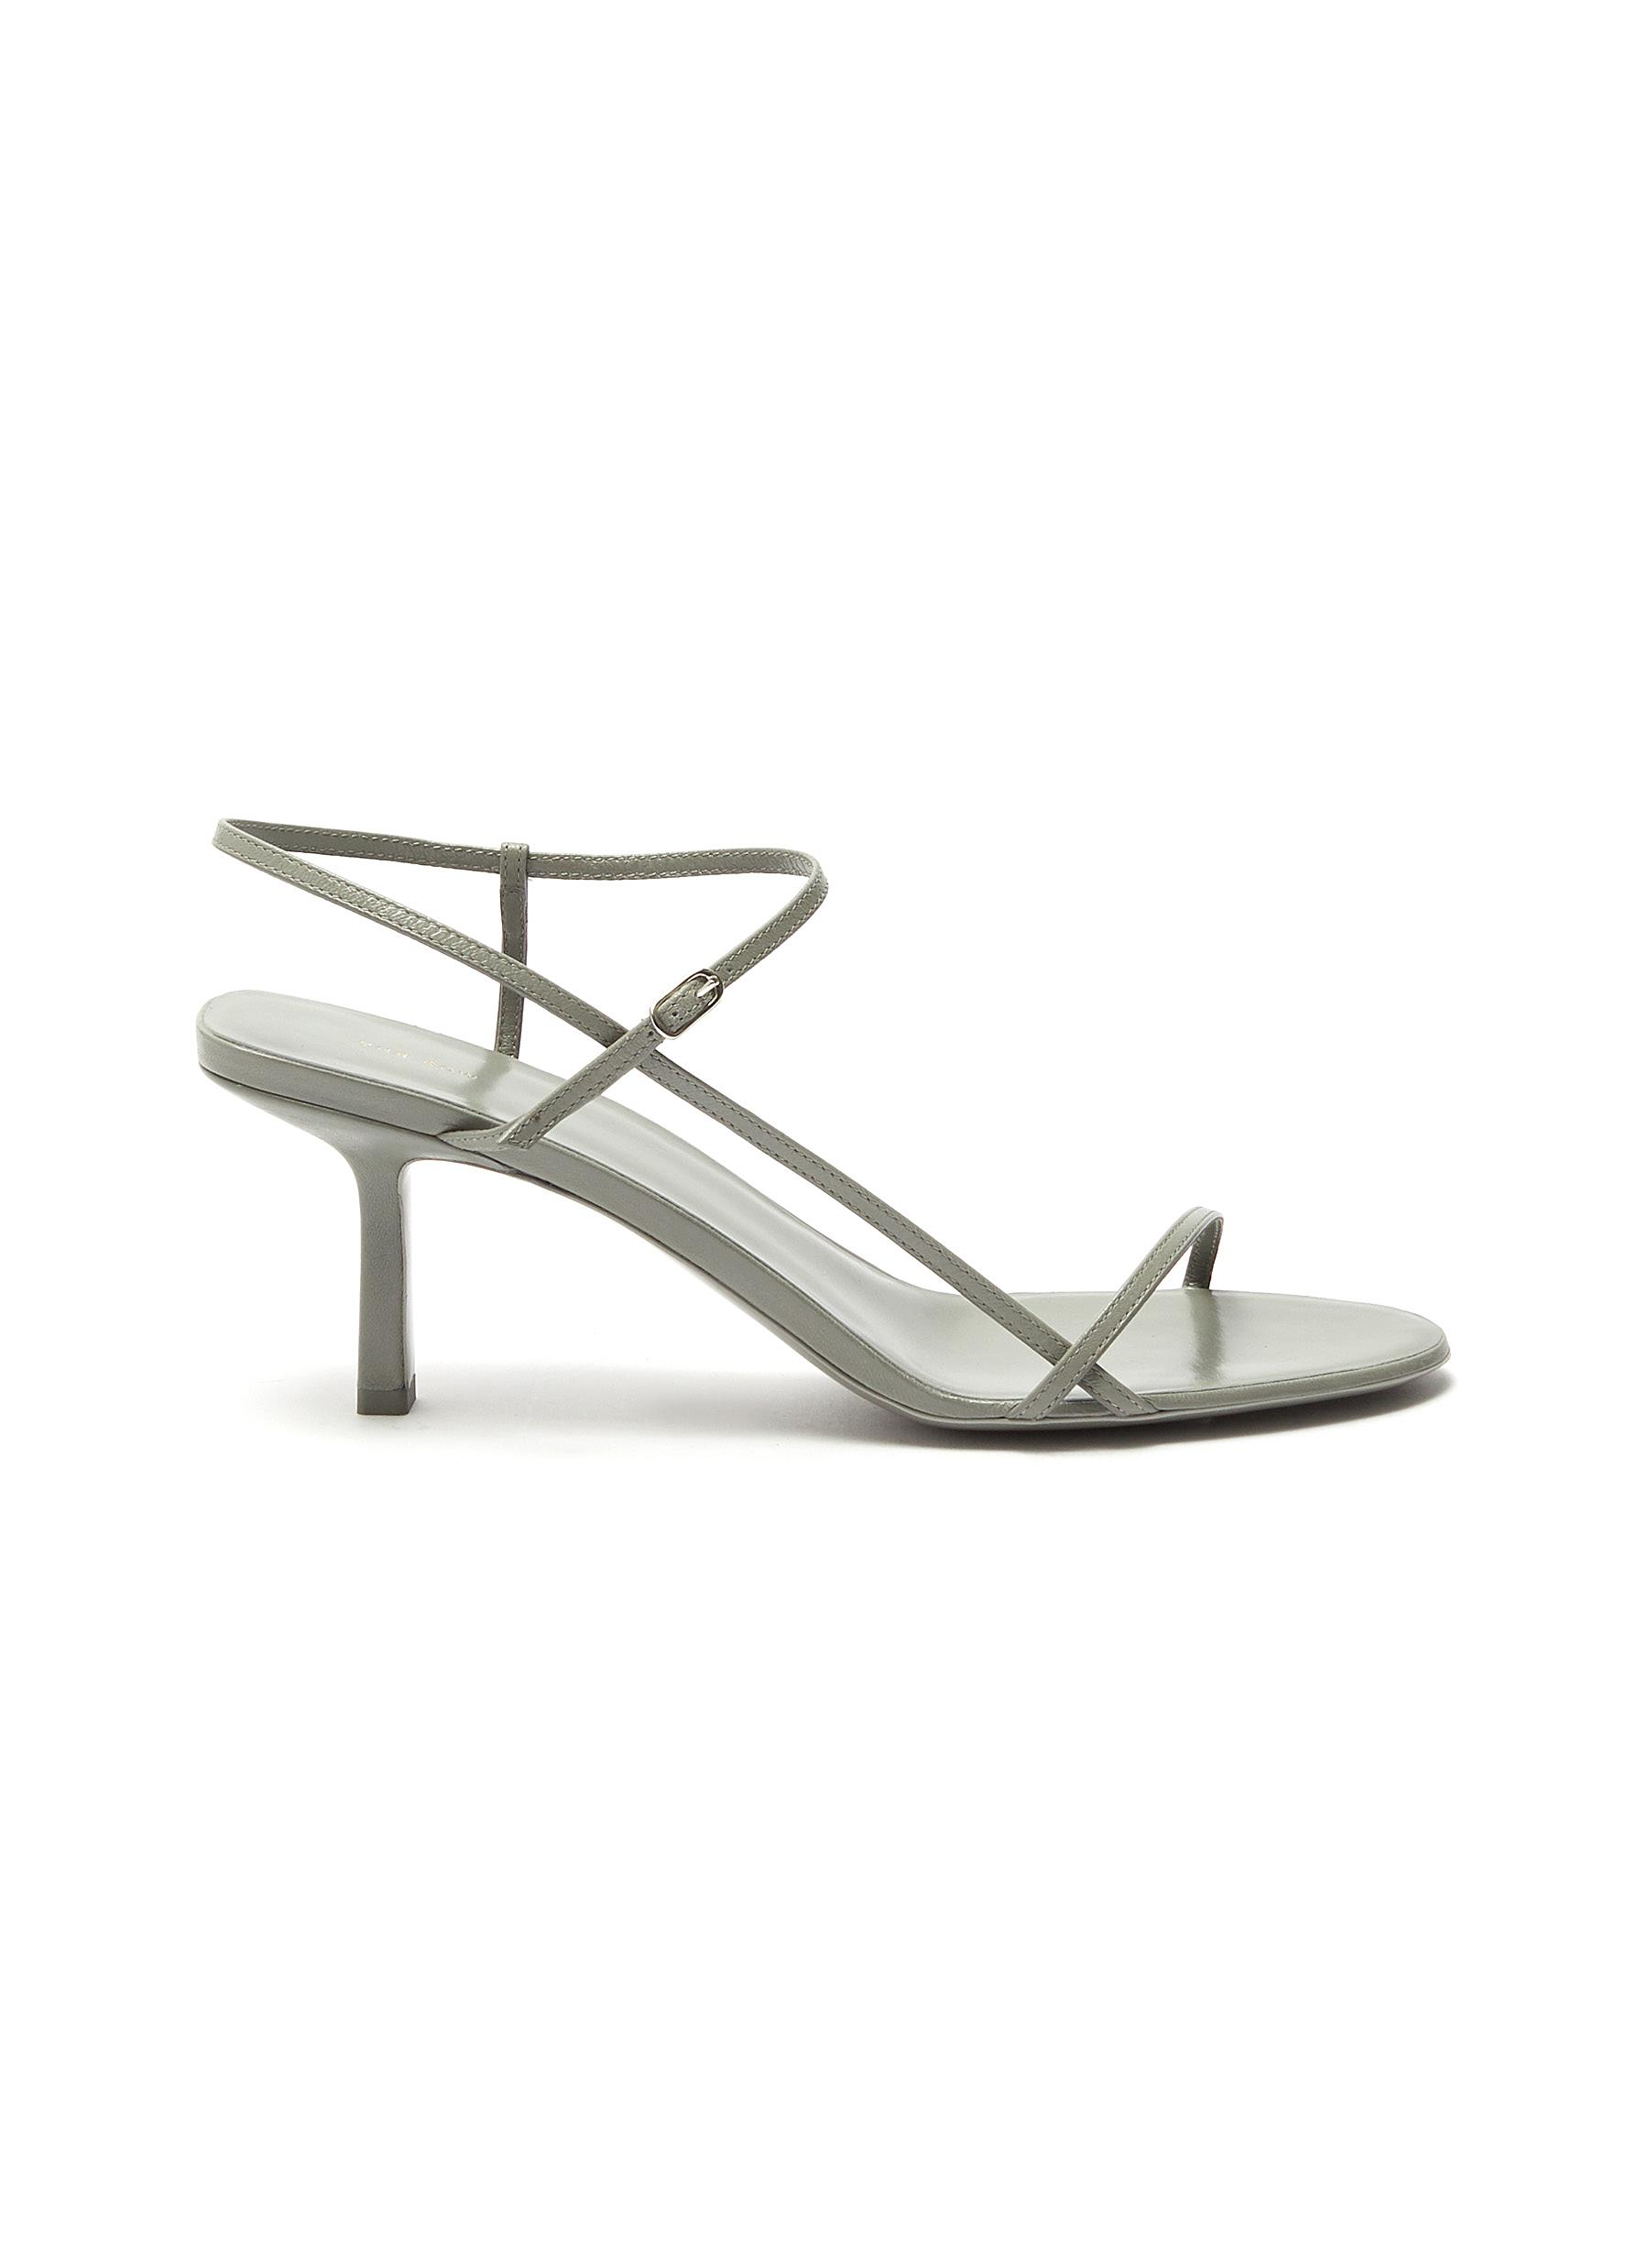 BARE' STRAPPY LEATHER SANDALS